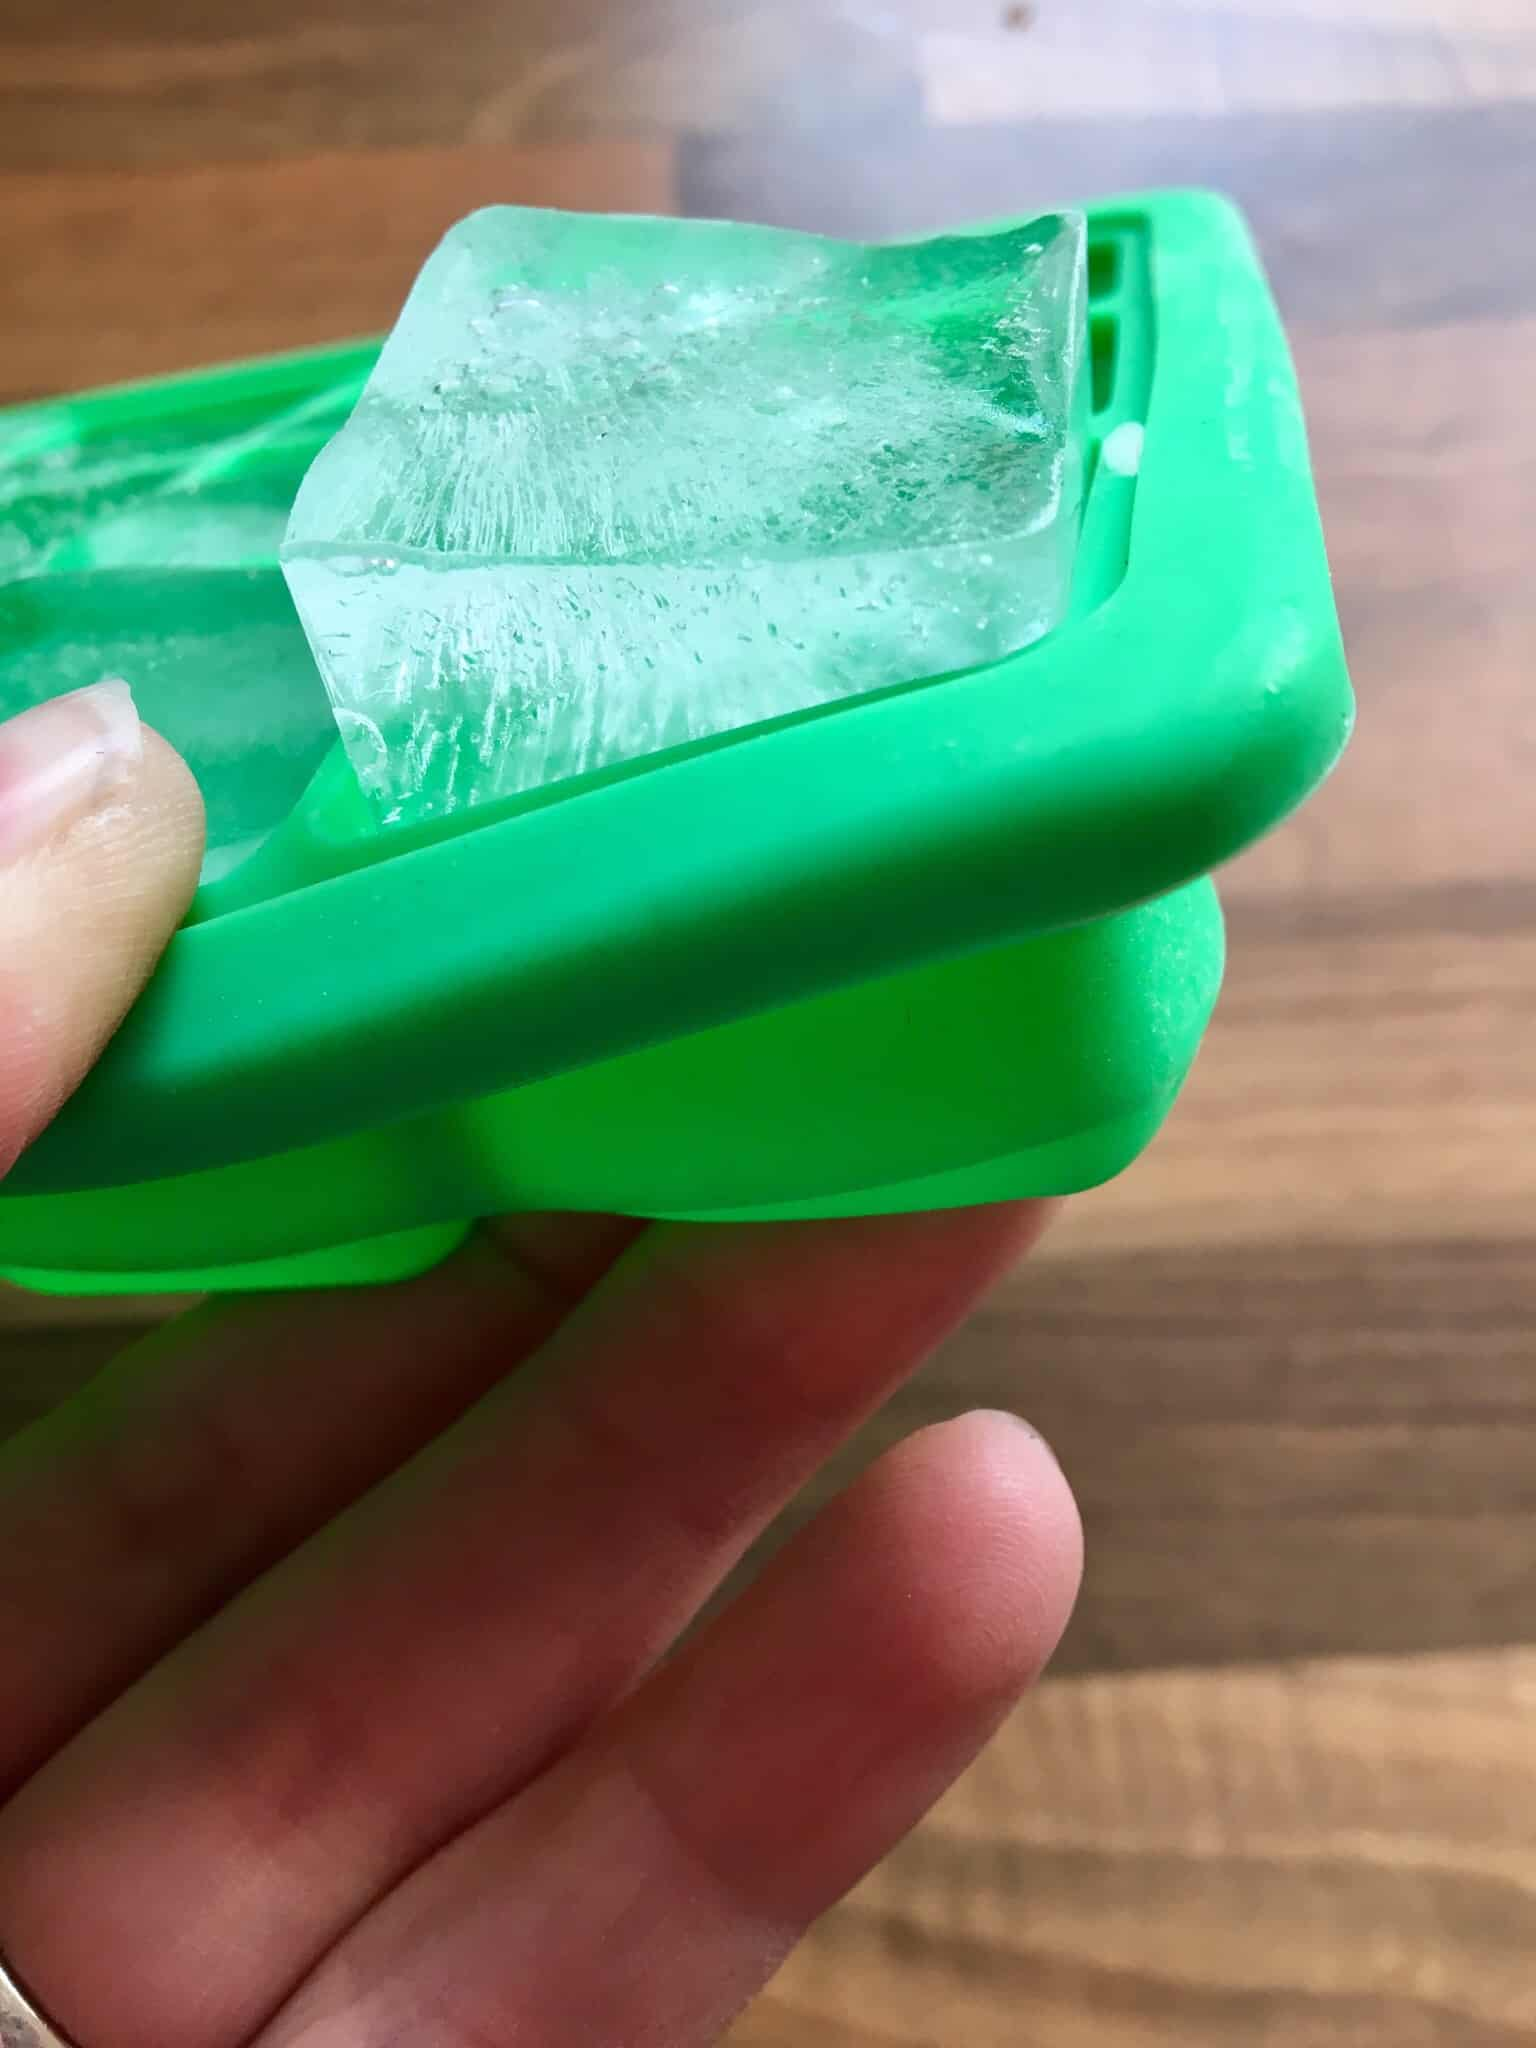 Ice cube in a silicone ice cube tray